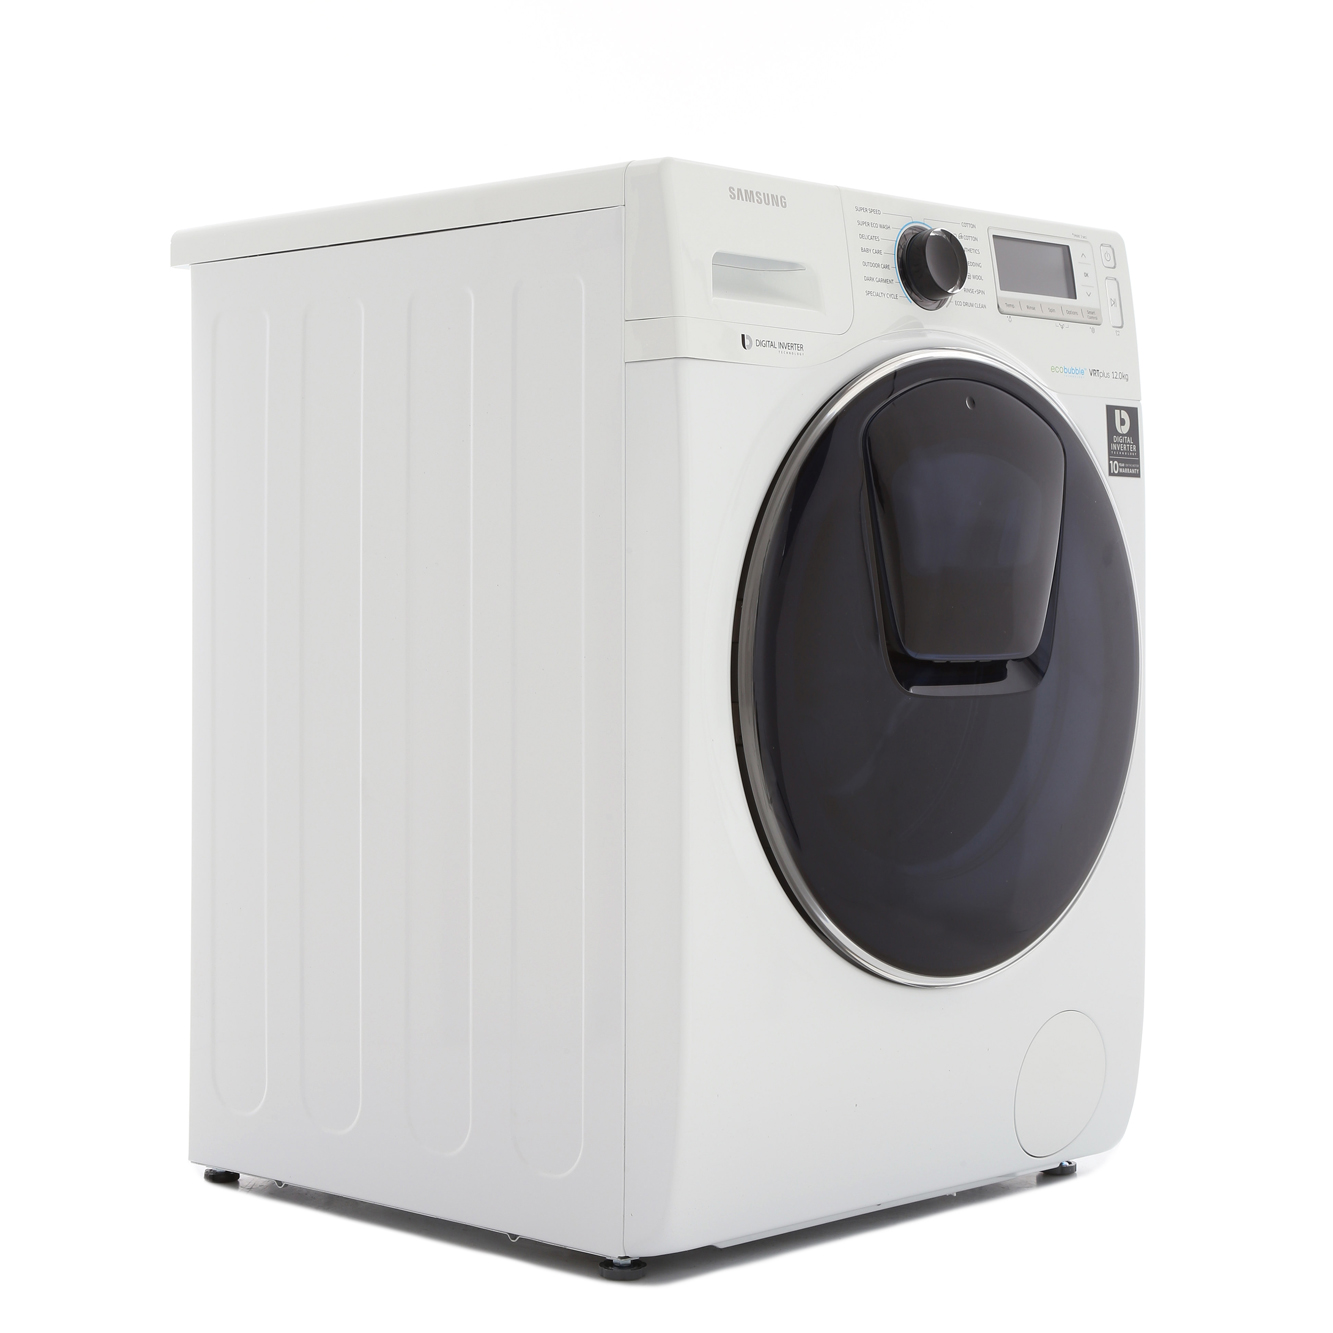 buy samsung addwash ww12k8412ow washing machine ww12k8412ow white with crystal blue door. Black Bedroom Furniture Sets. Home Design Ideas